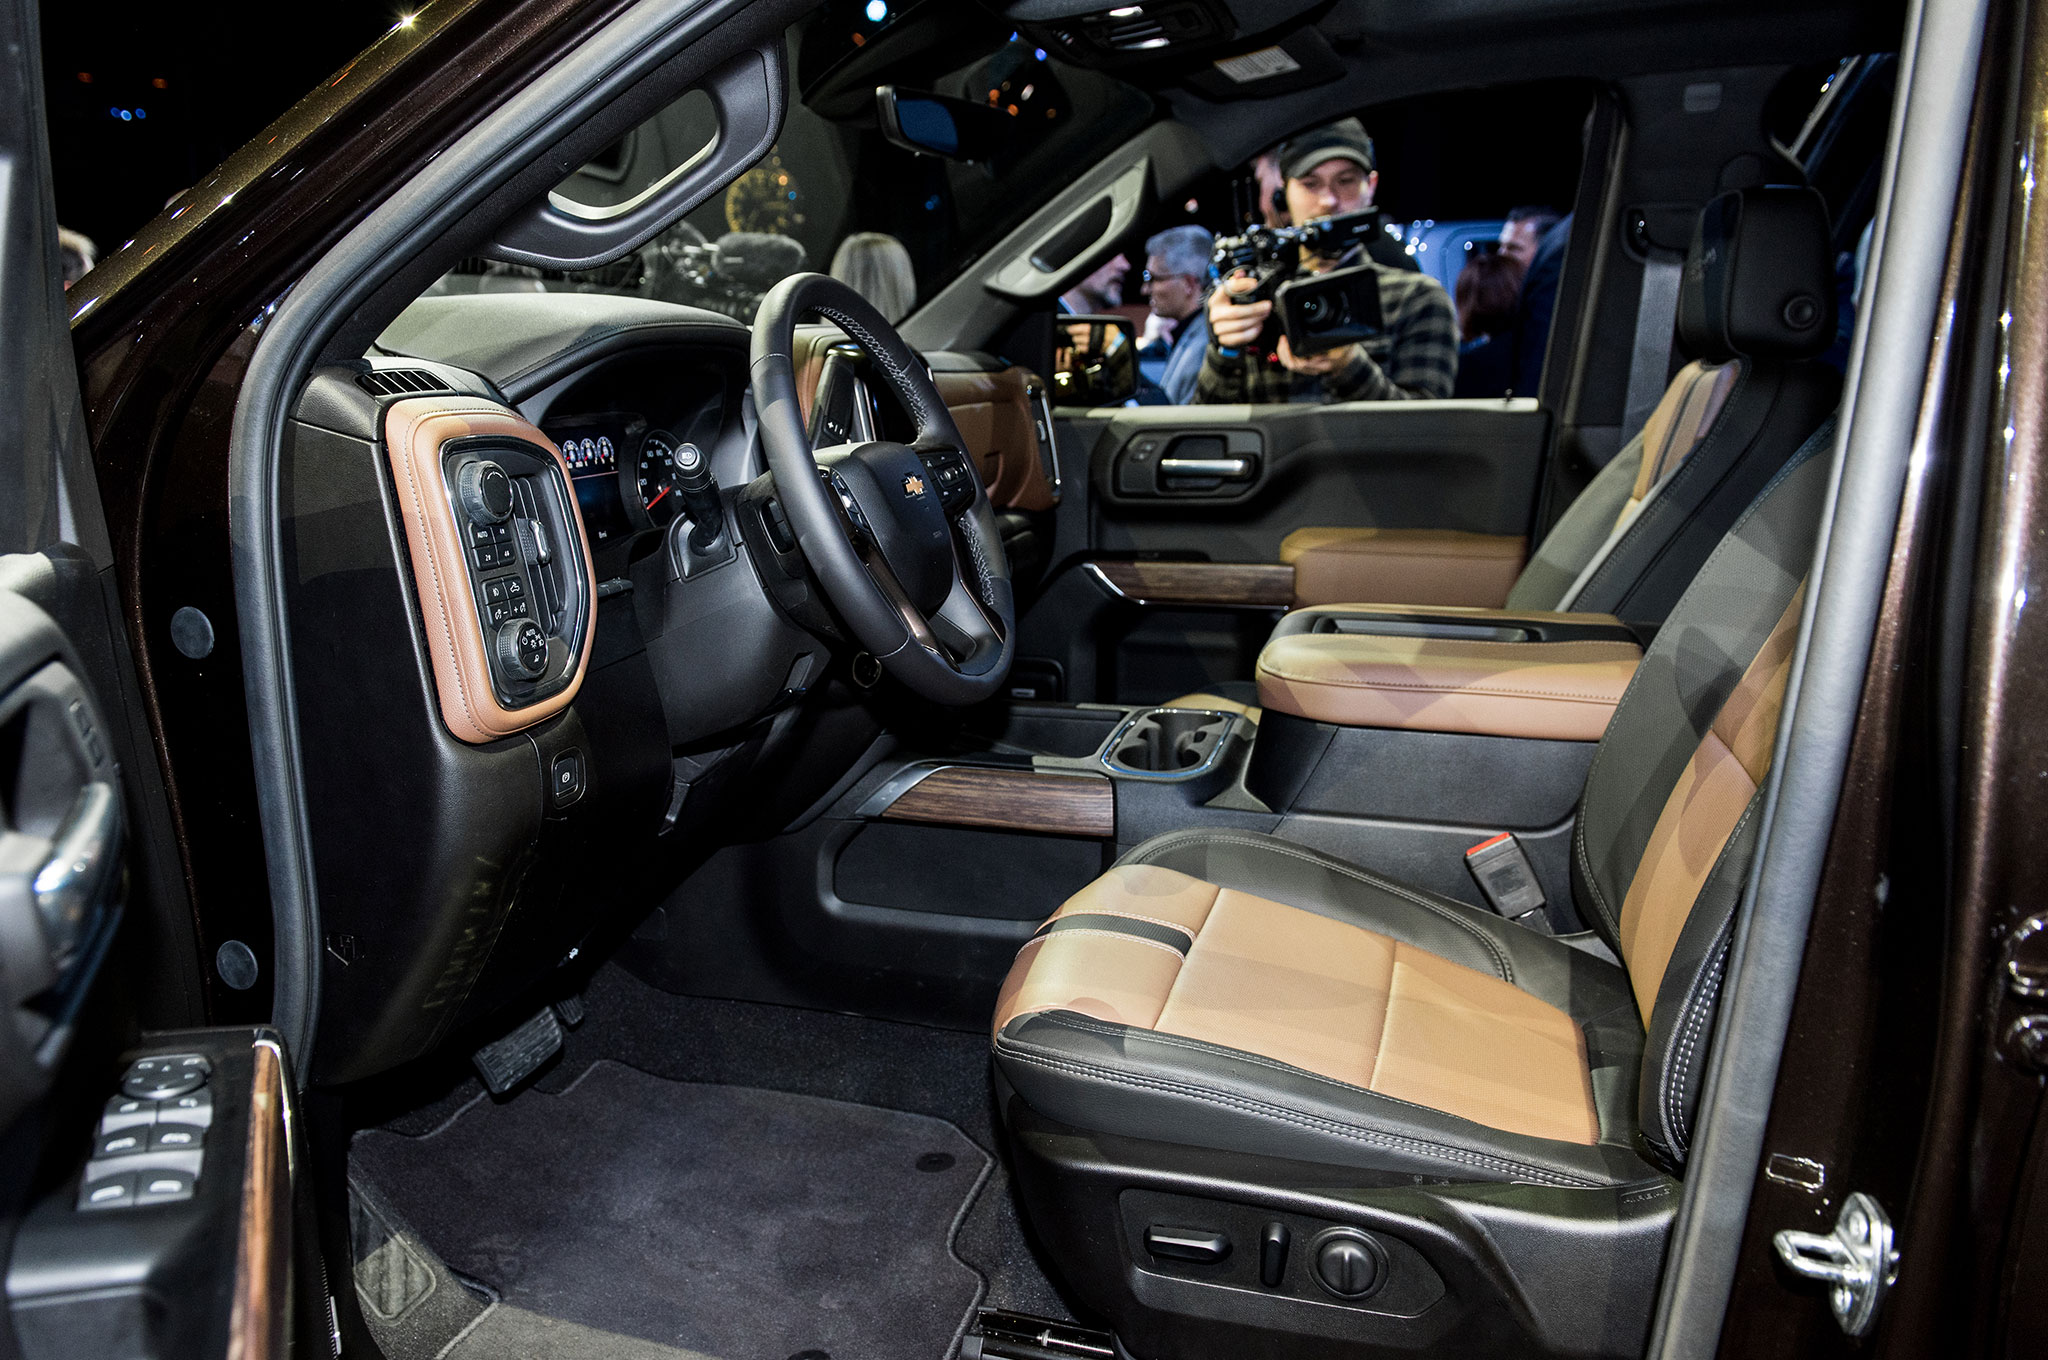 2019 Chevrolet Silverado 1500 High Country interior from ...